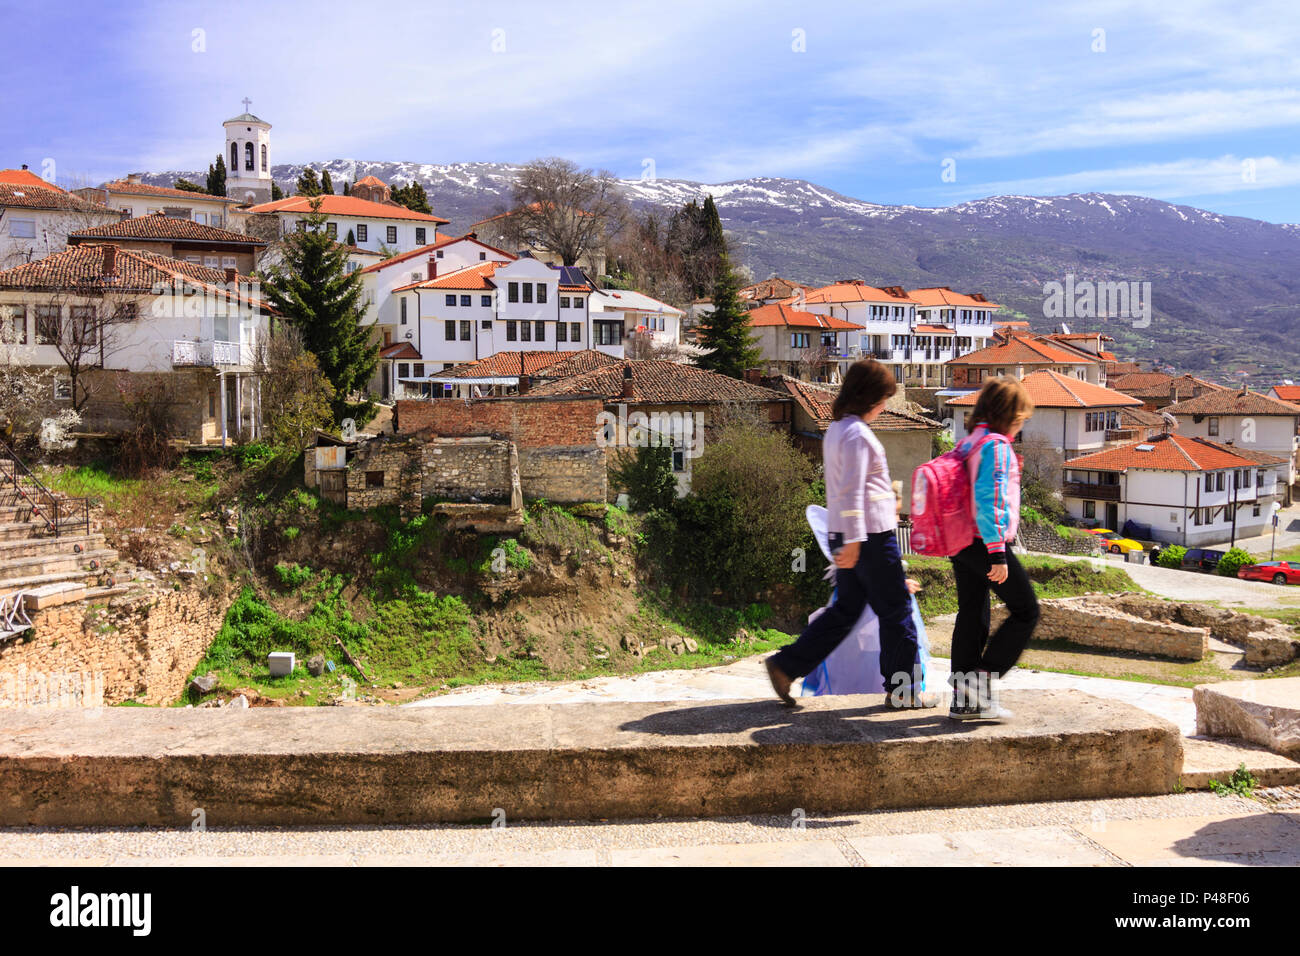 Ohrid, Republic of Macedonia : Children walk past an overview of the old town of Ohrid. - Stock Image